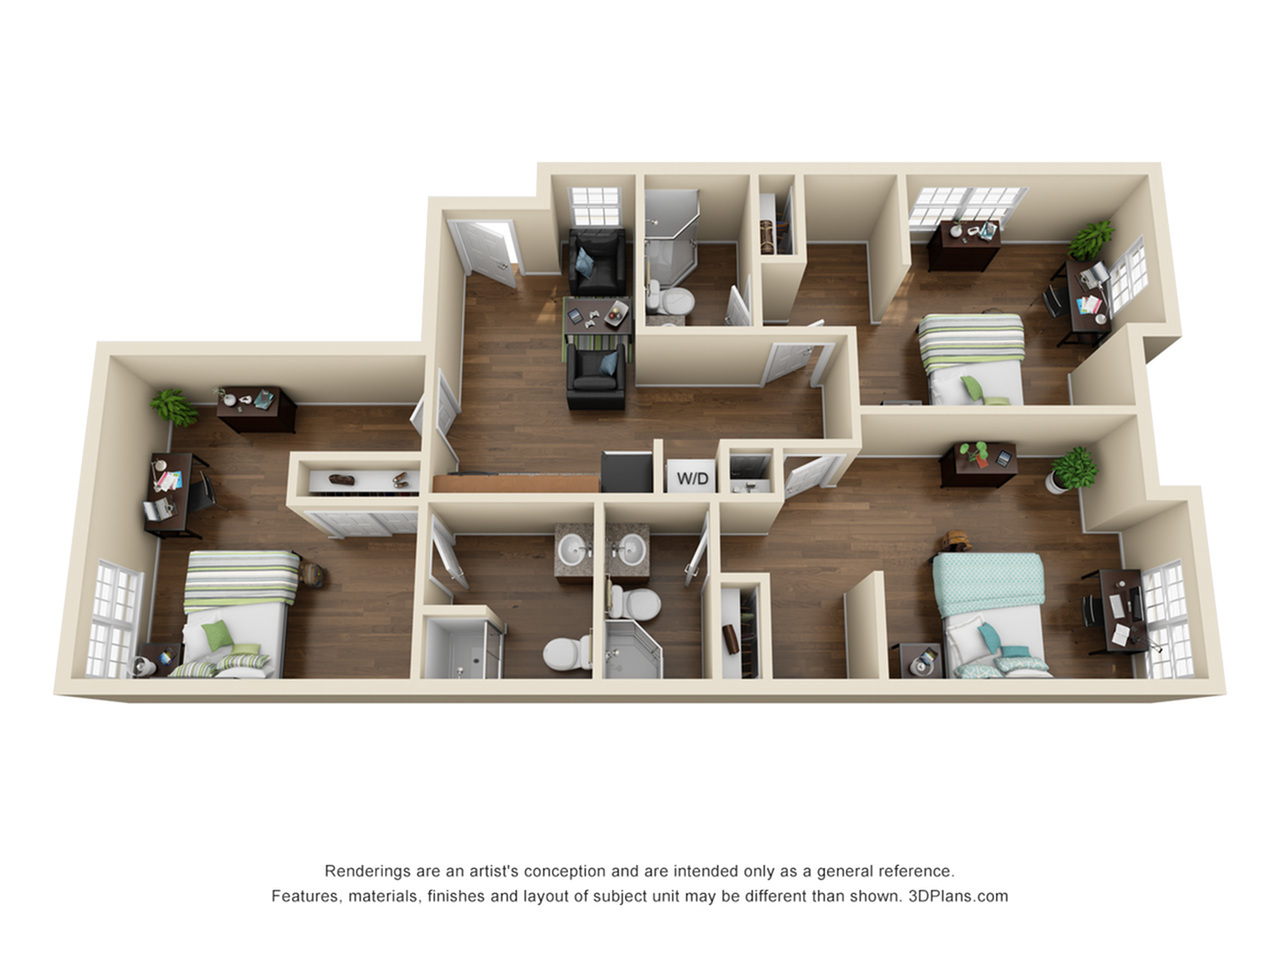 3 Studio Suites shown (with shared common area)